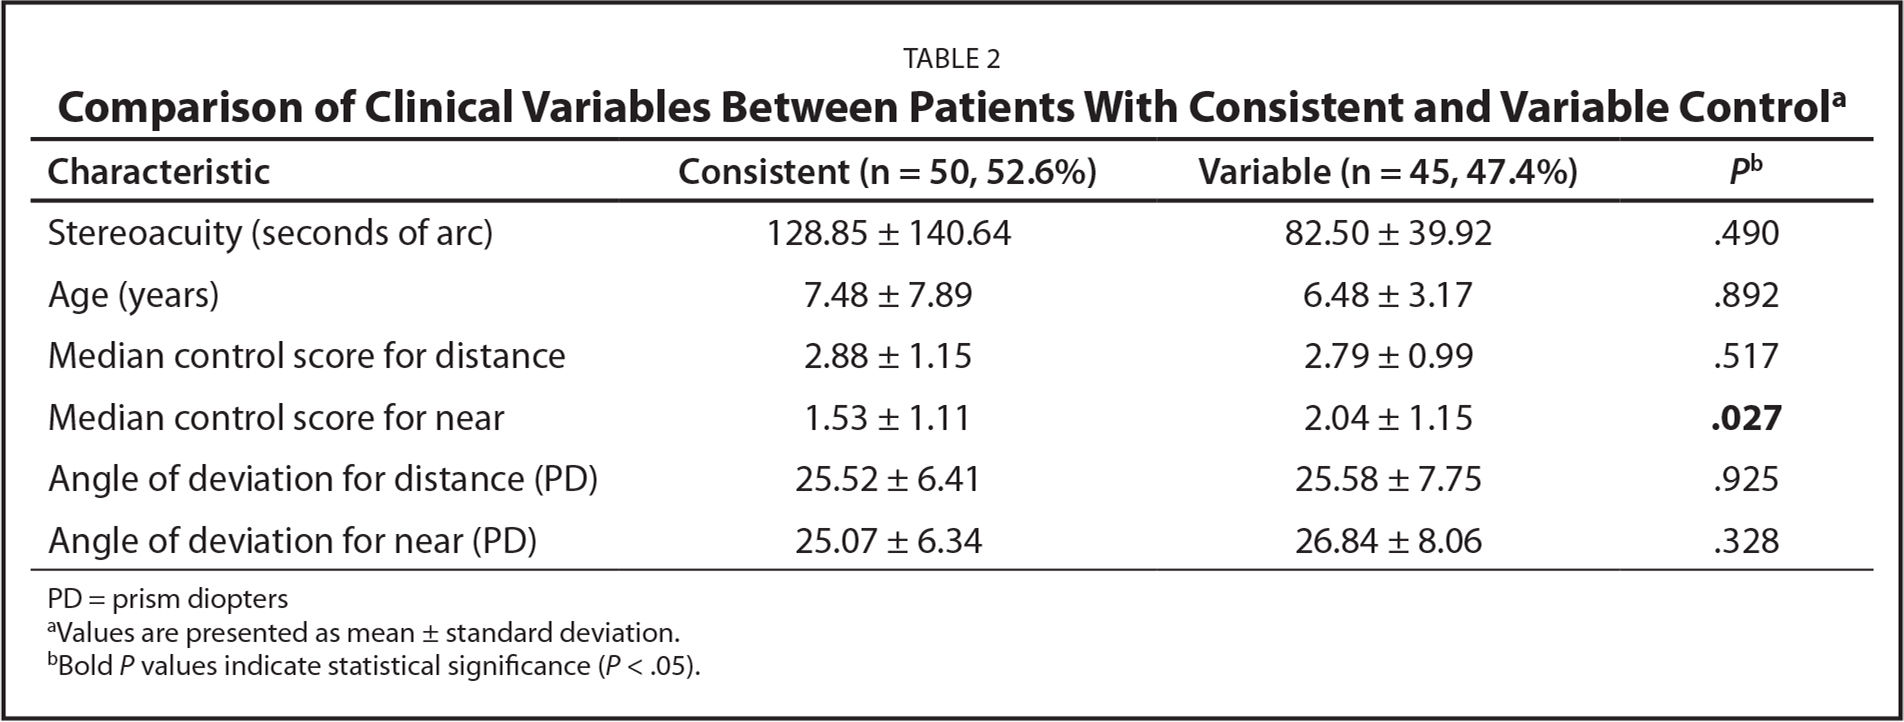 Comparison of Clinical Variables Between Patients With Consistent and Variable Controla